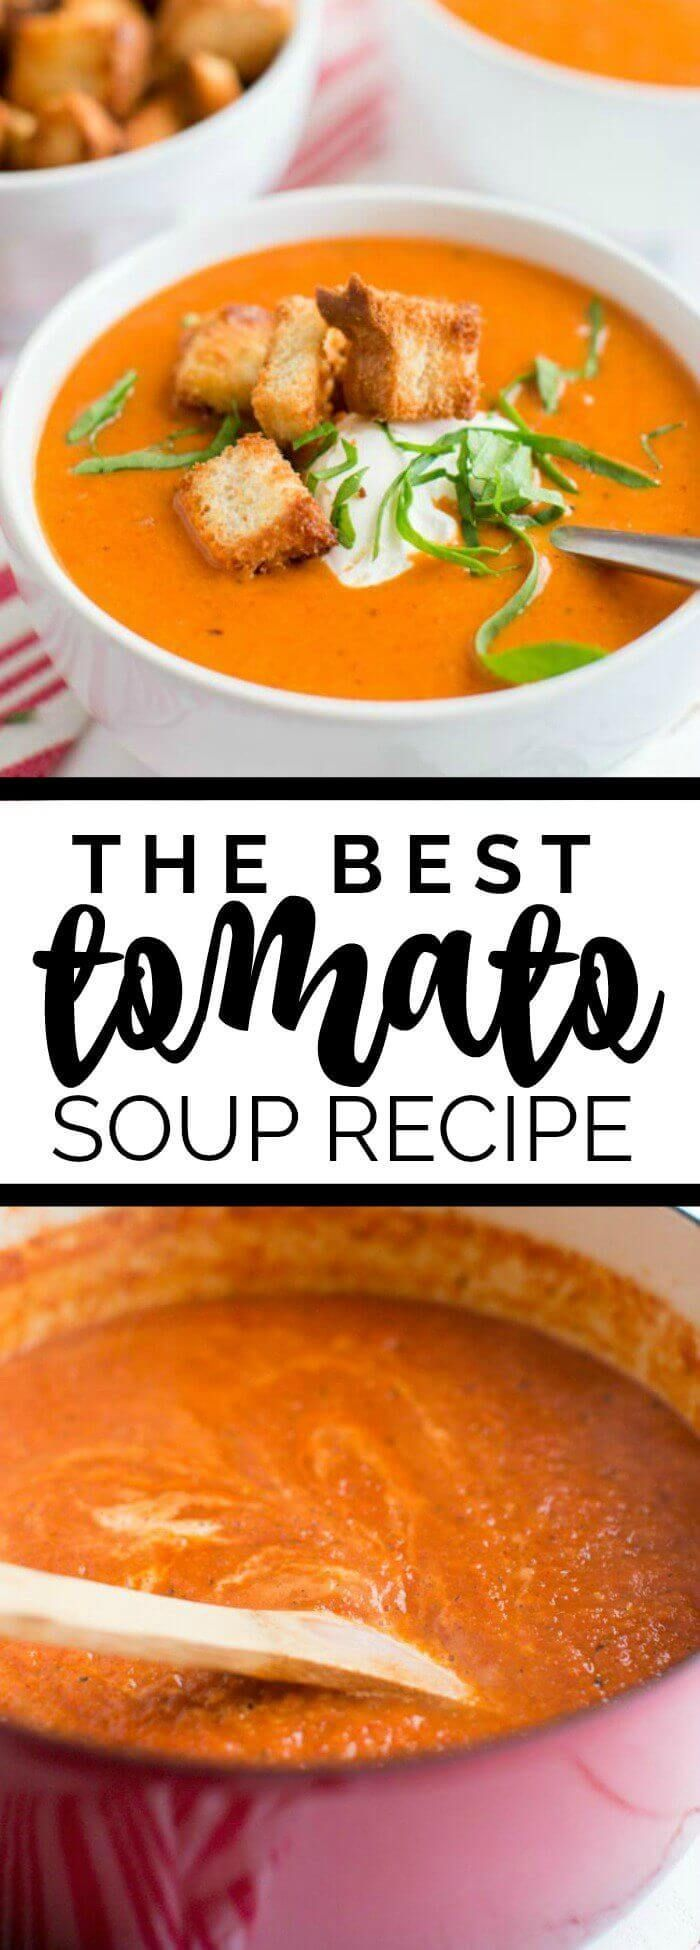 The Best Tomato Soup Recipe via @spaceshipslb #brauntherms #ad